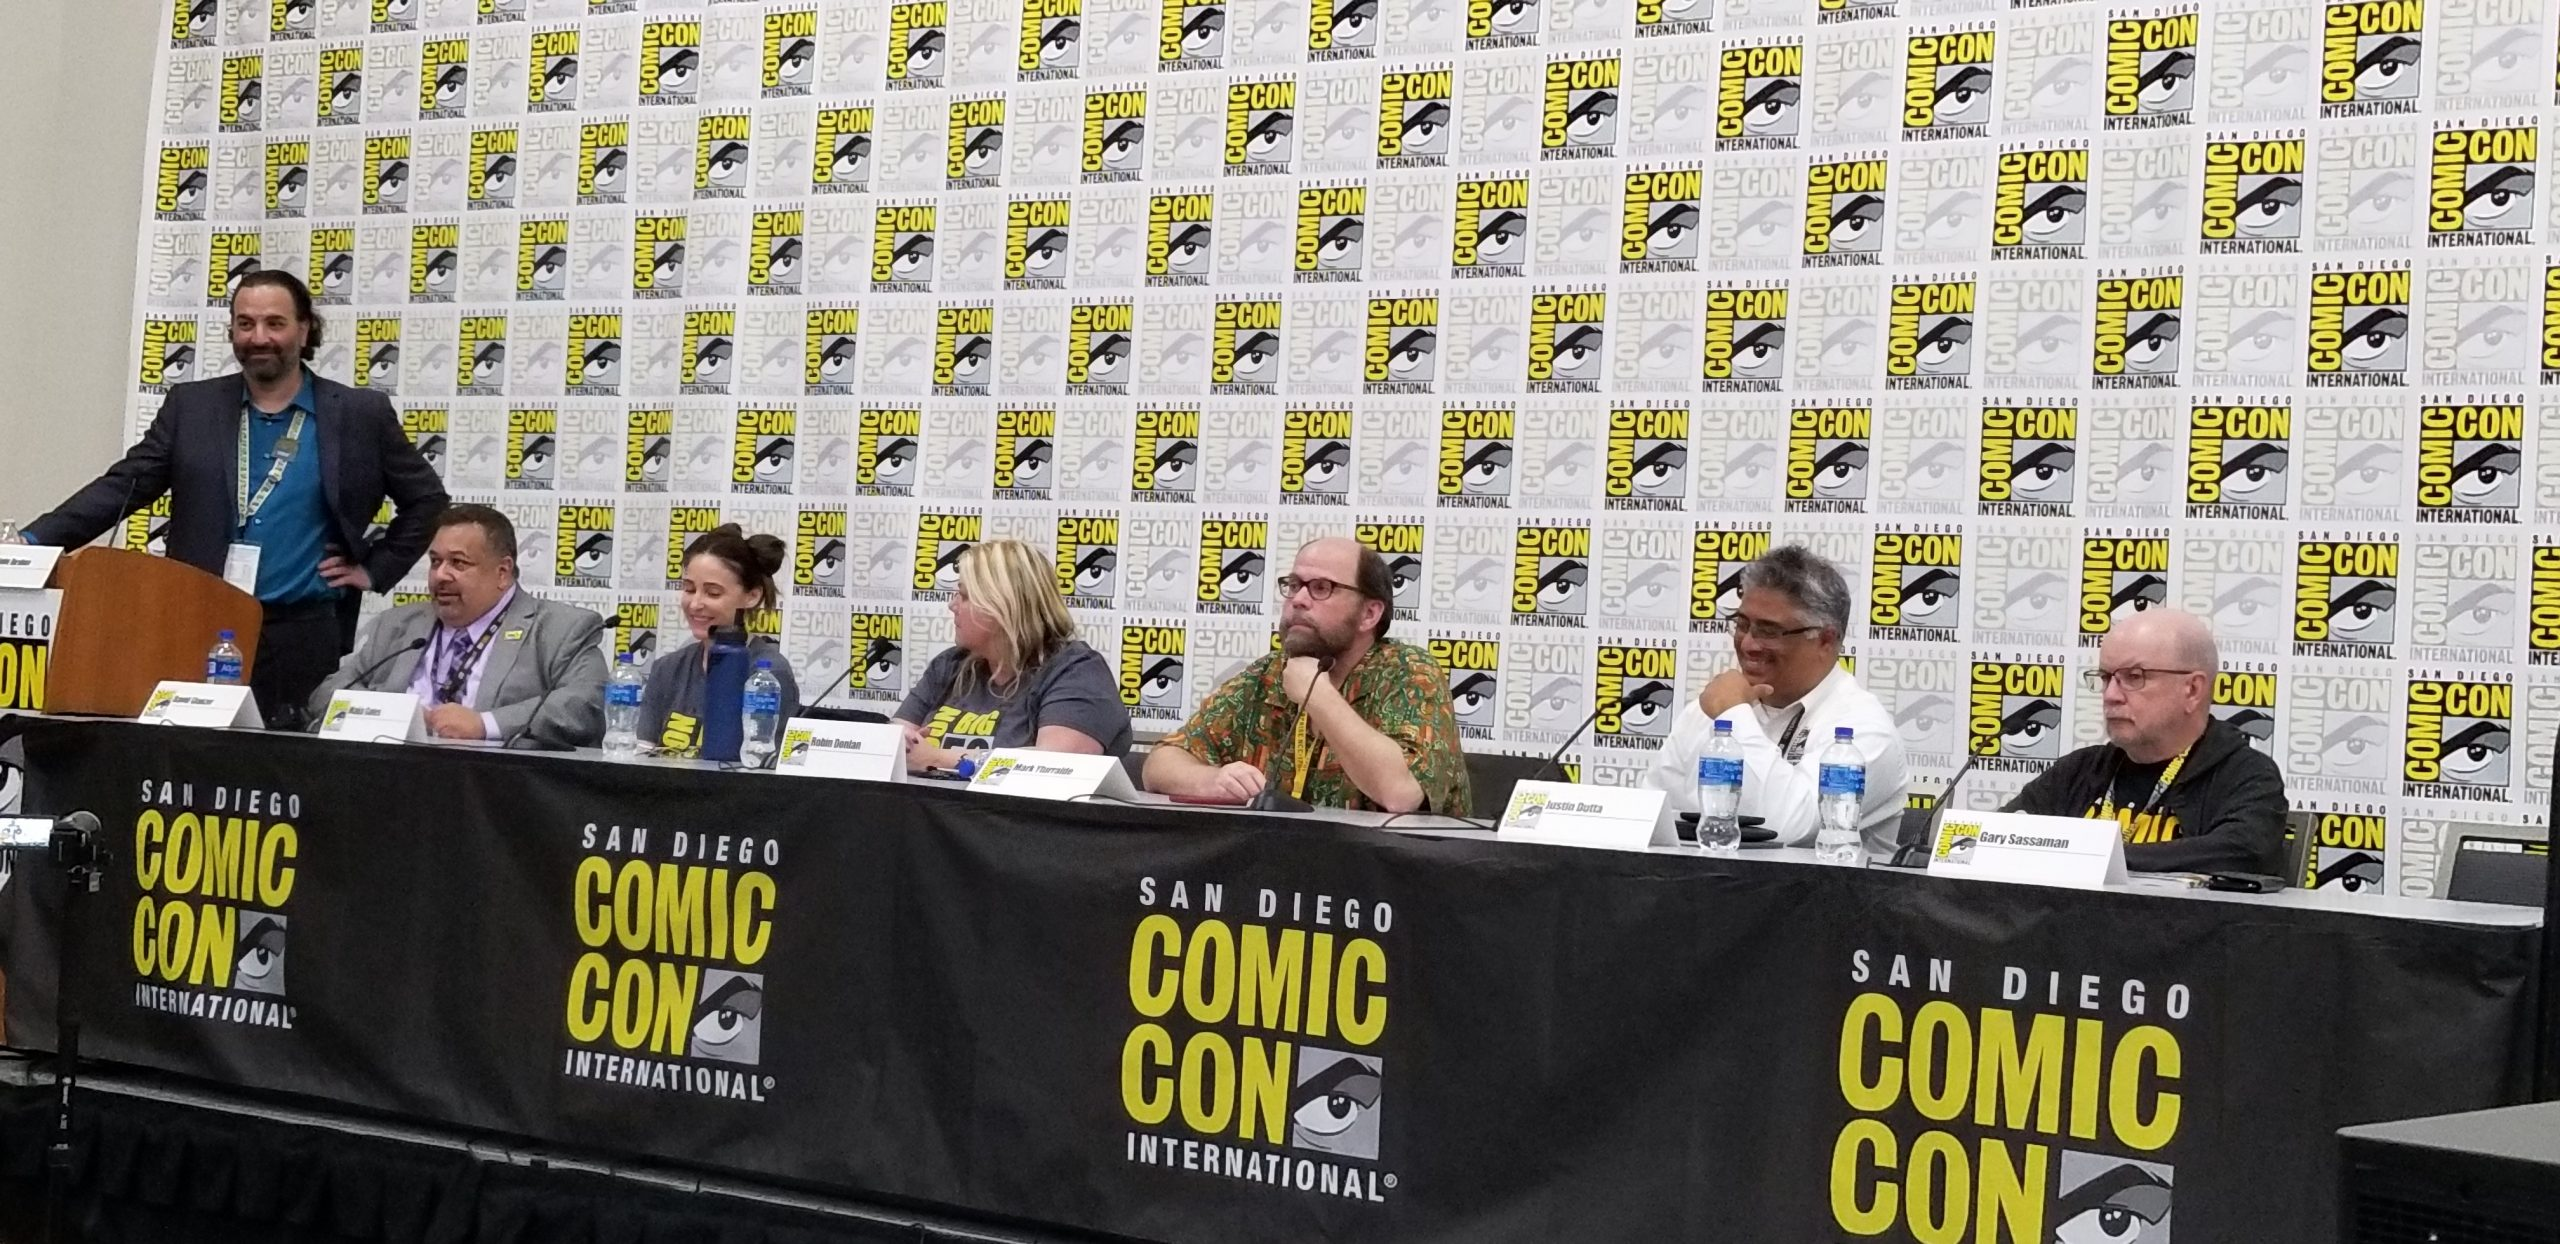 "SDCC '19: ""Comic-Con Now"" panel highlights a team effort to keep the con moving & growing - The Beat"